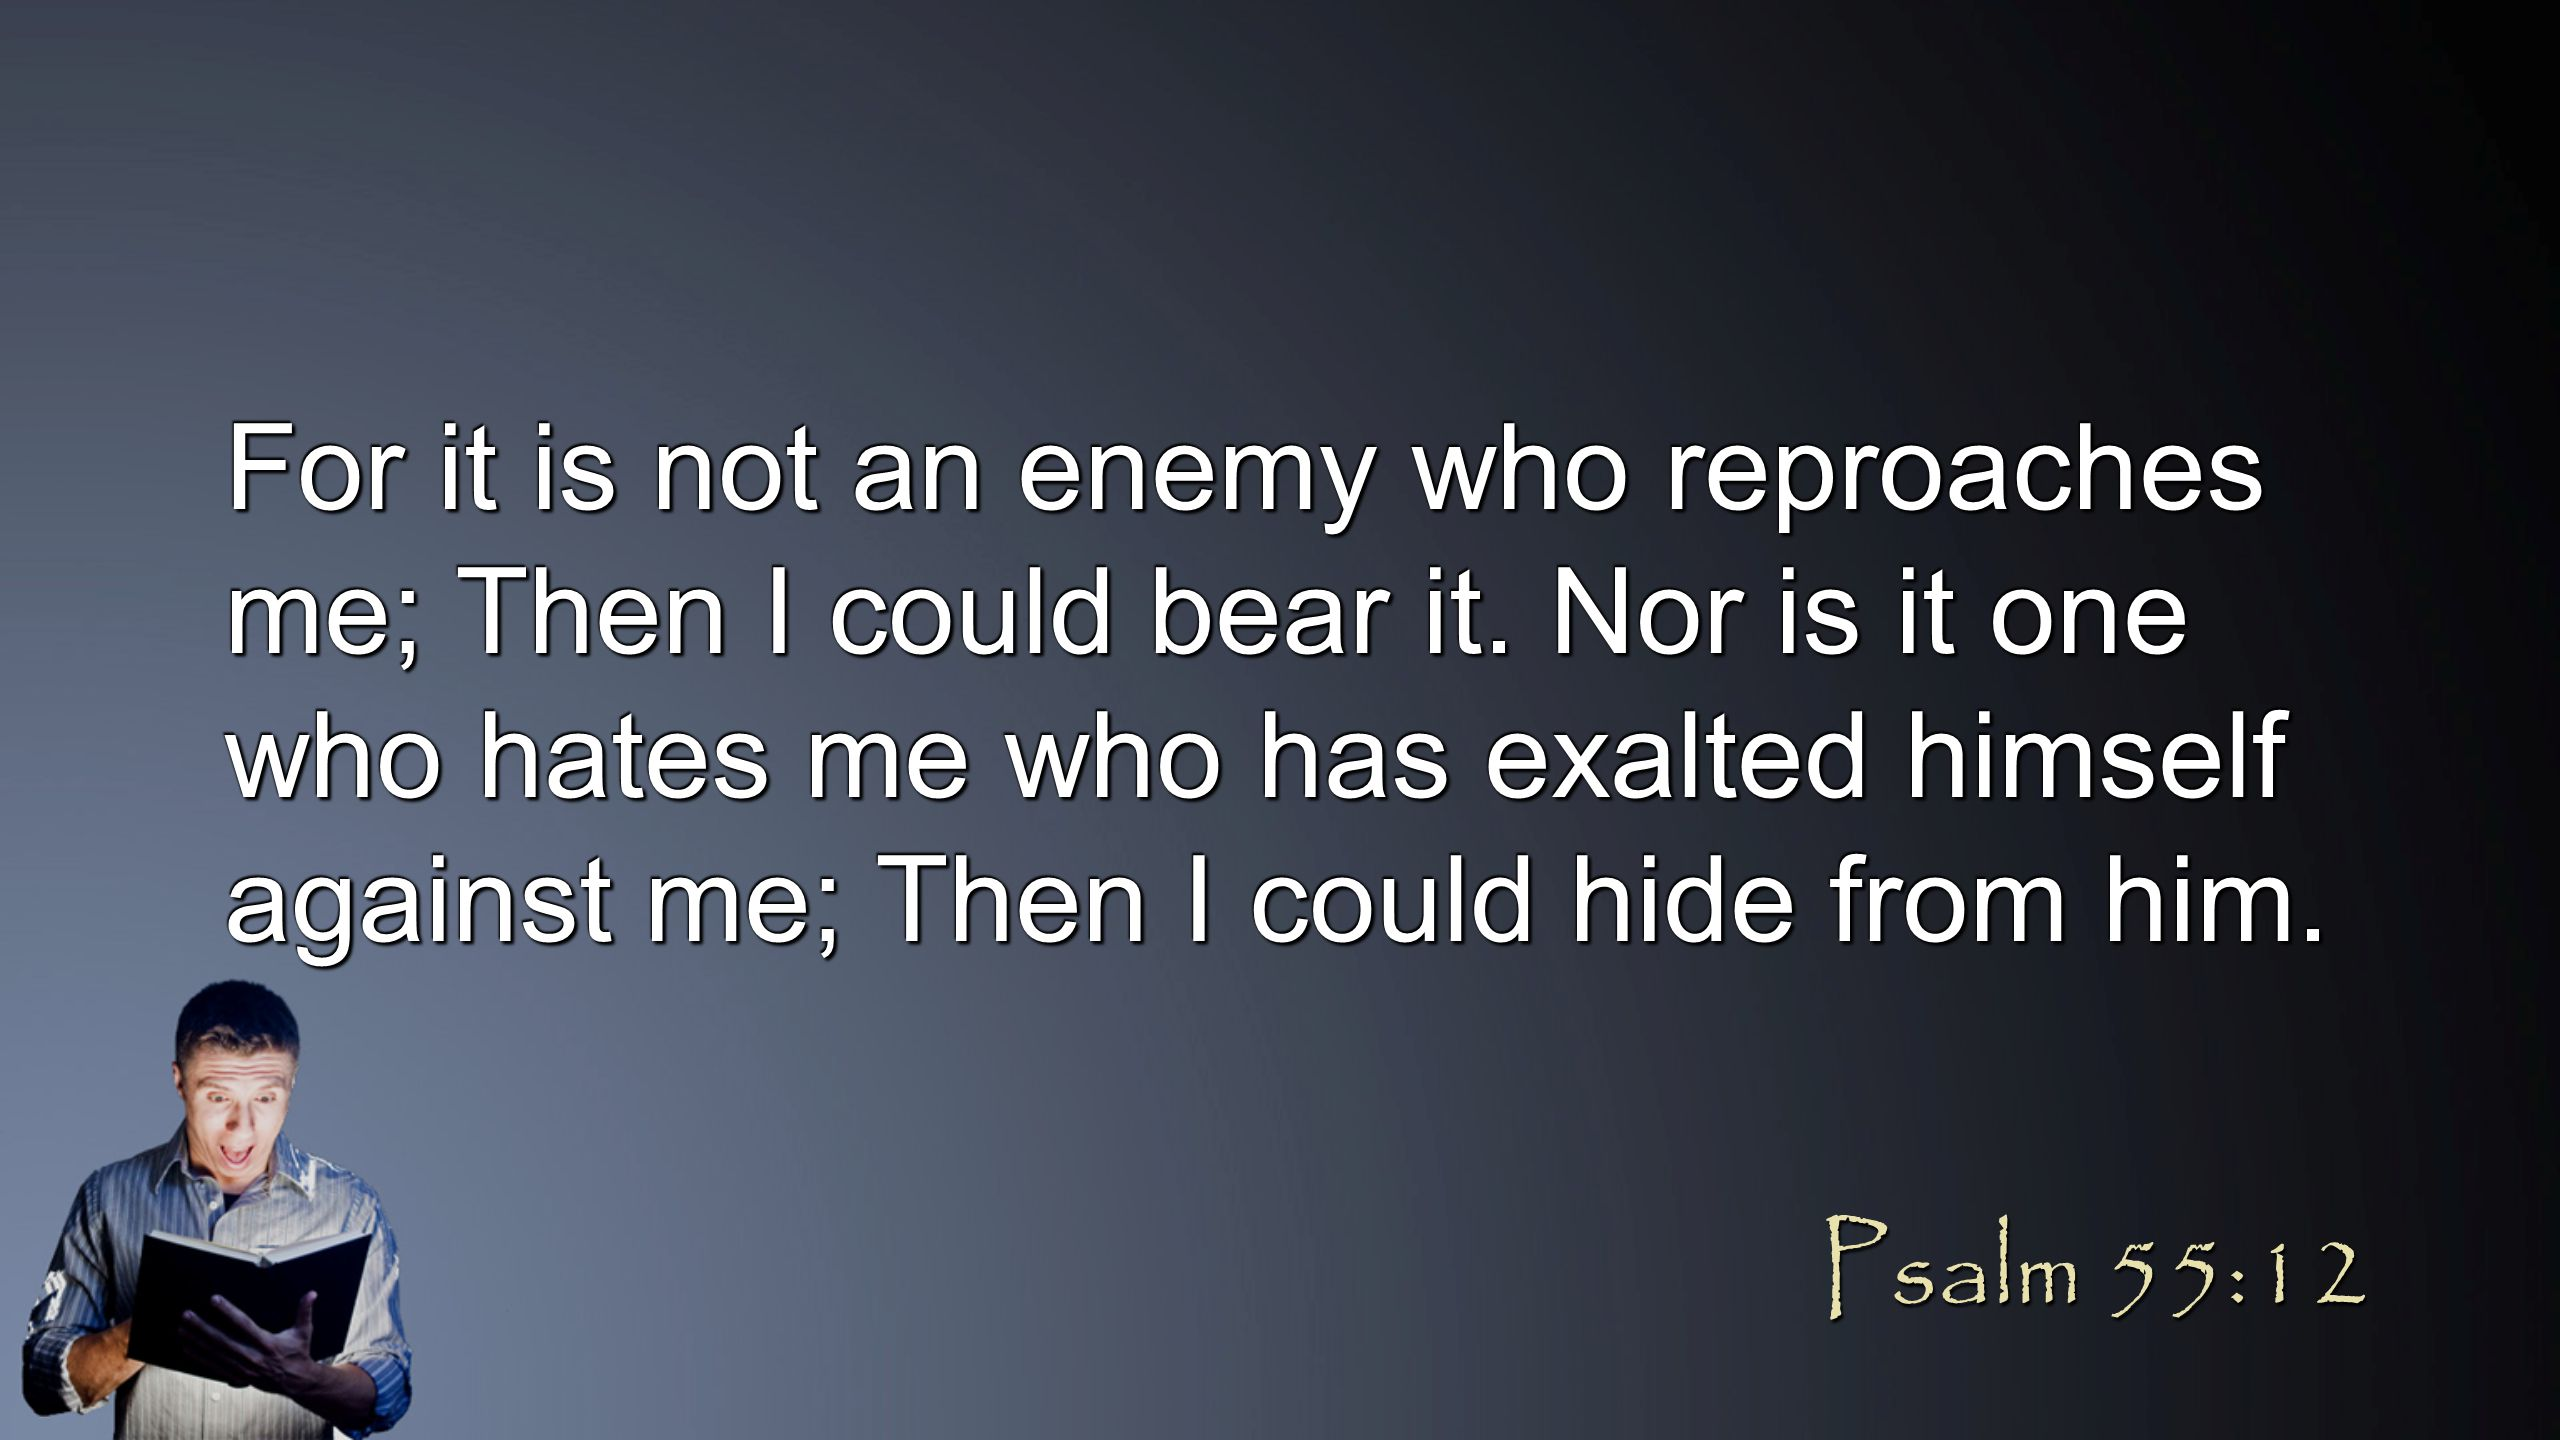 For it is not an enemy who reproaches me; Then I could bear it. Nor is it one who hates me who has exalted himself against me; Then I could hide from